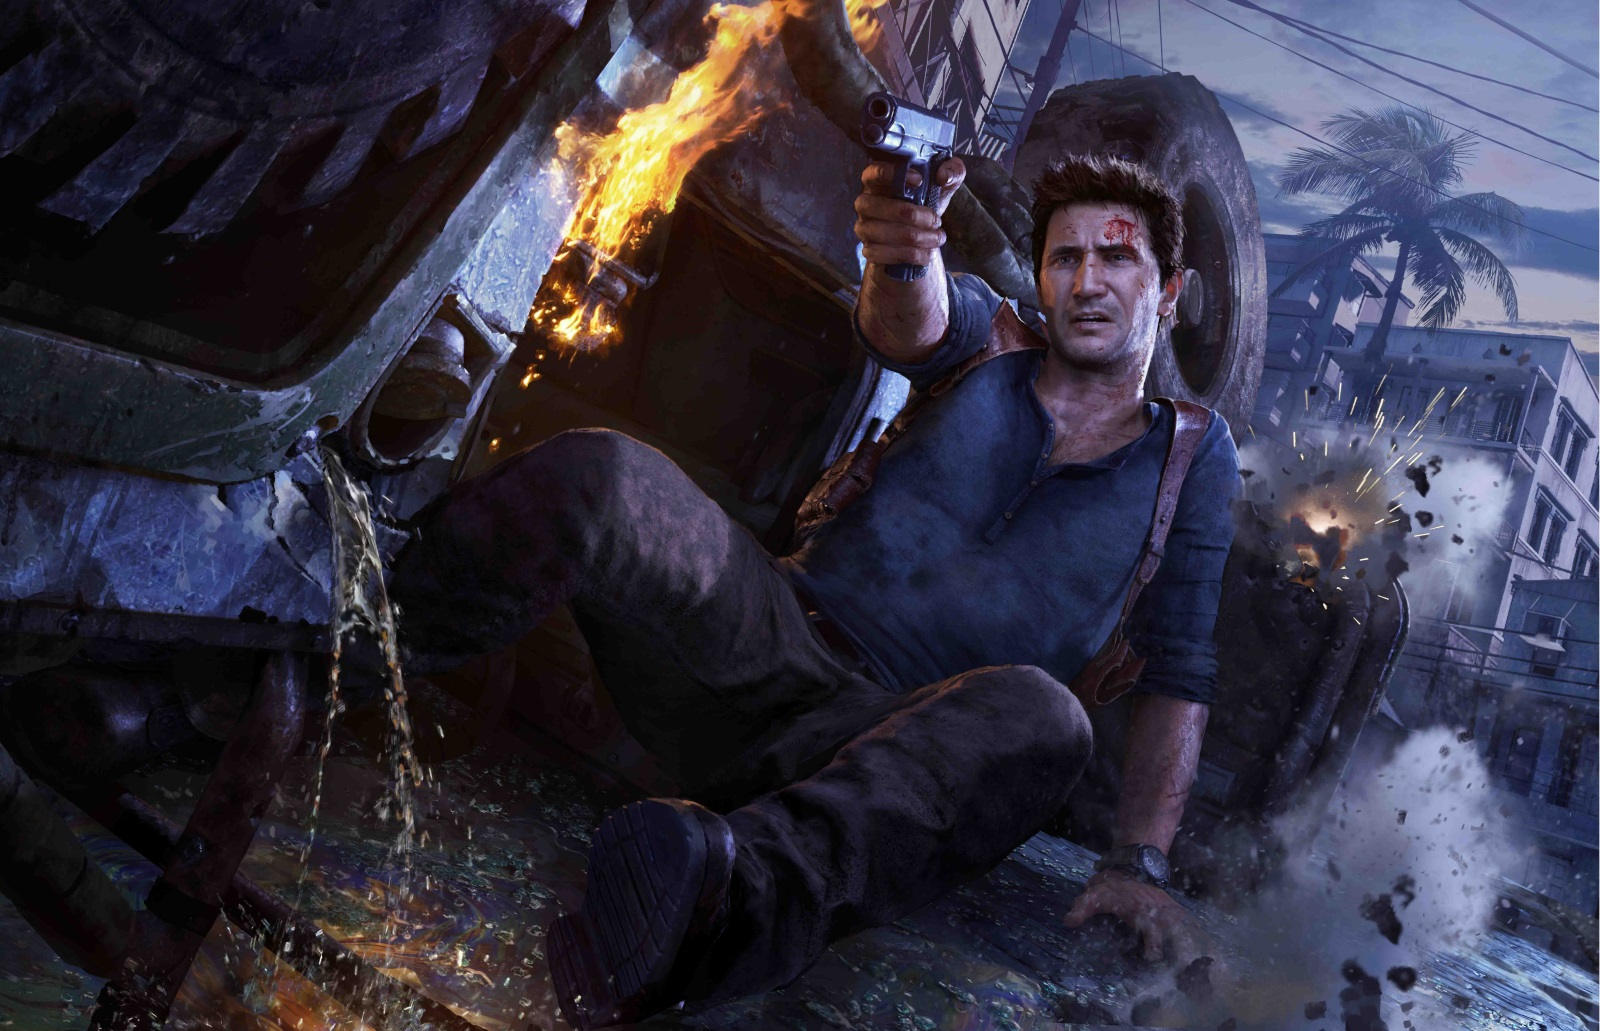 Uncharted 4 review: not as groundbreaking as 2, but the ...